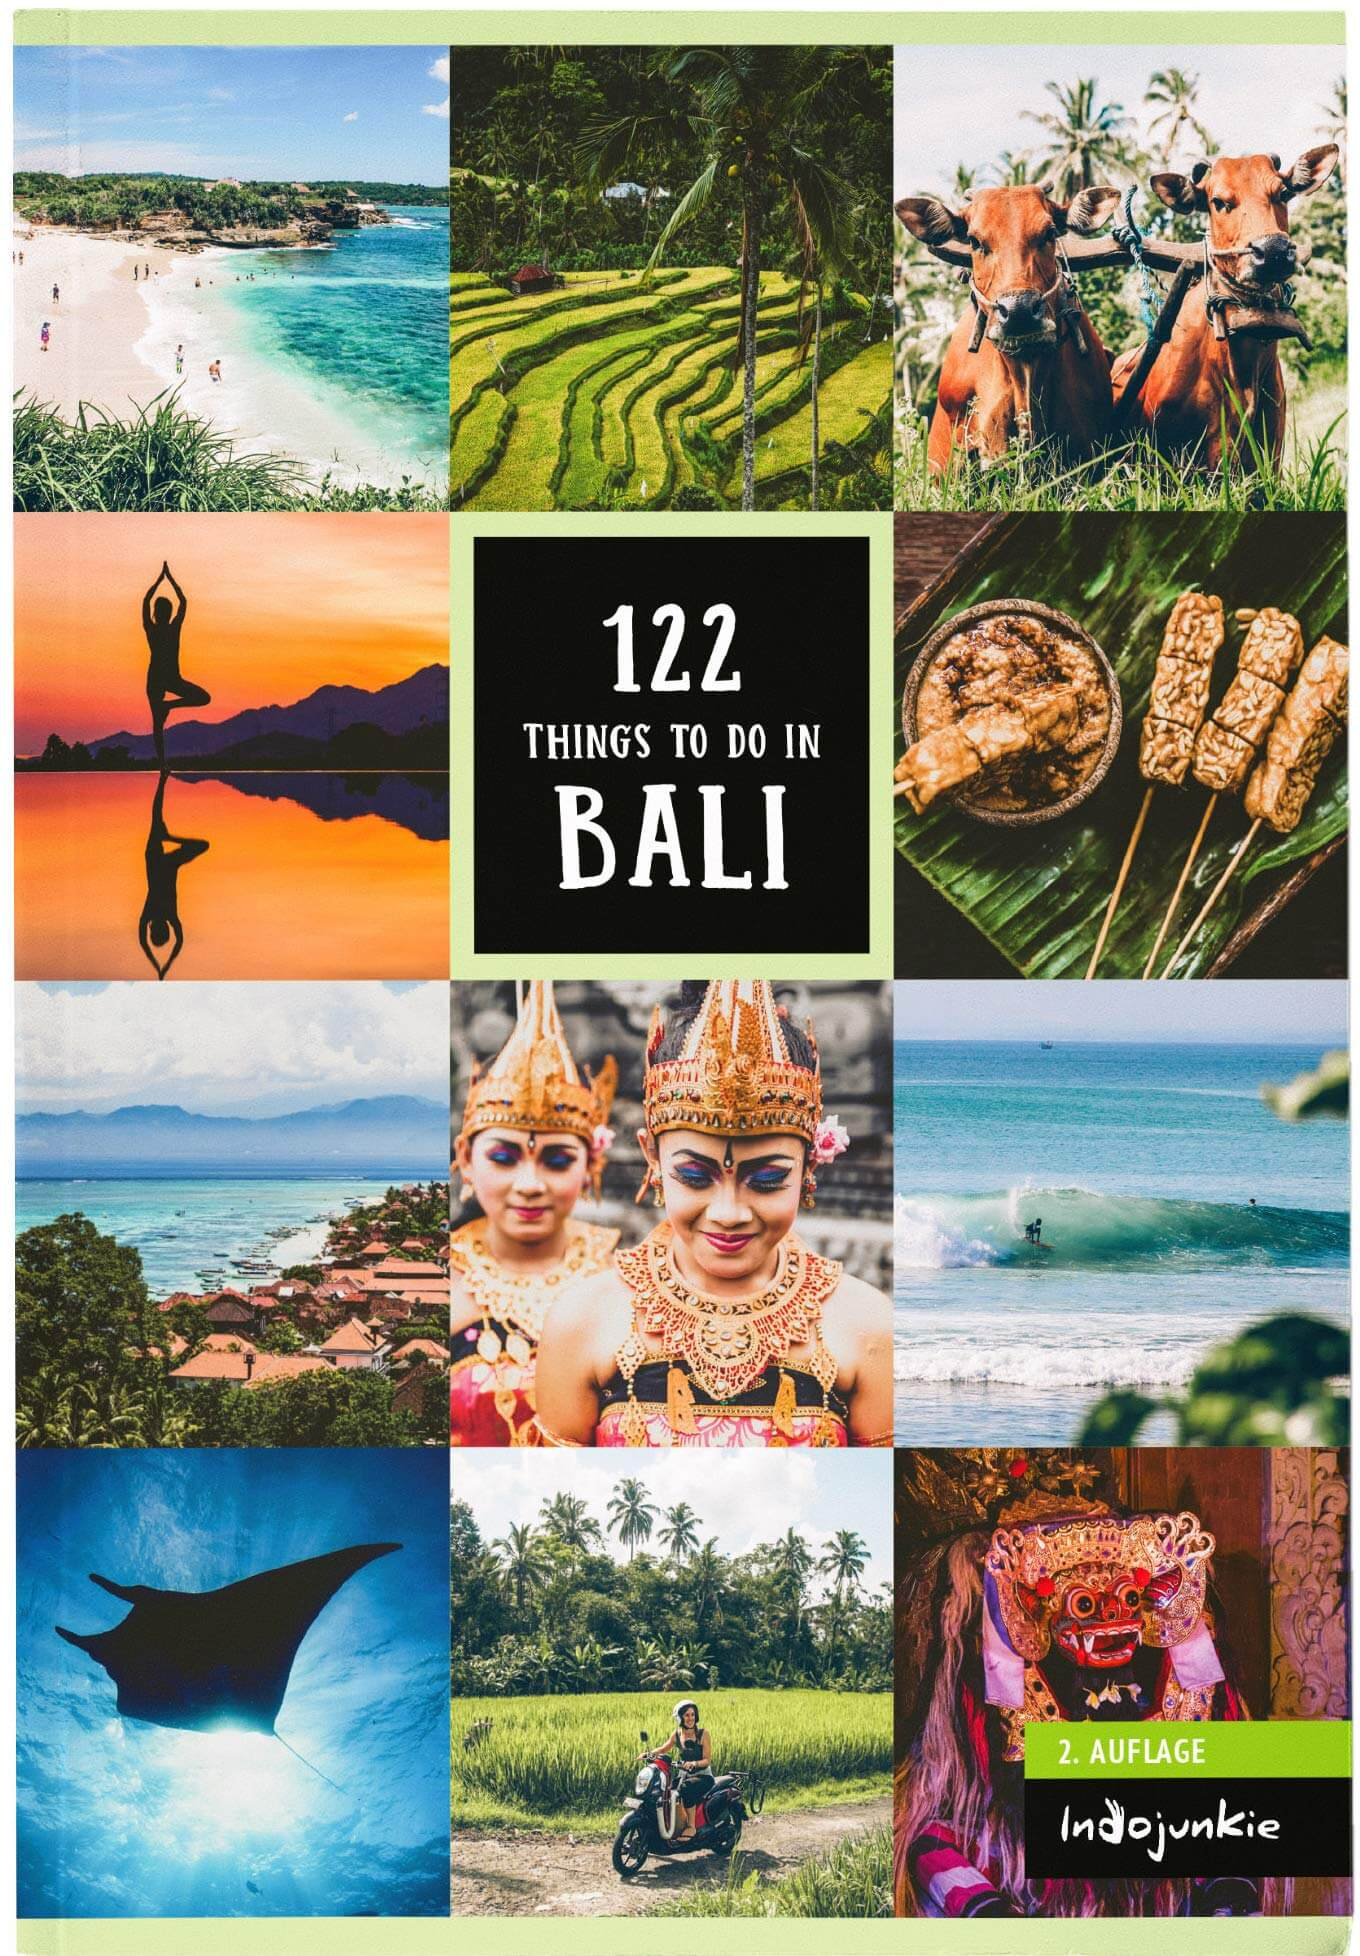 122 Things to Do in Bali 2. Auflage